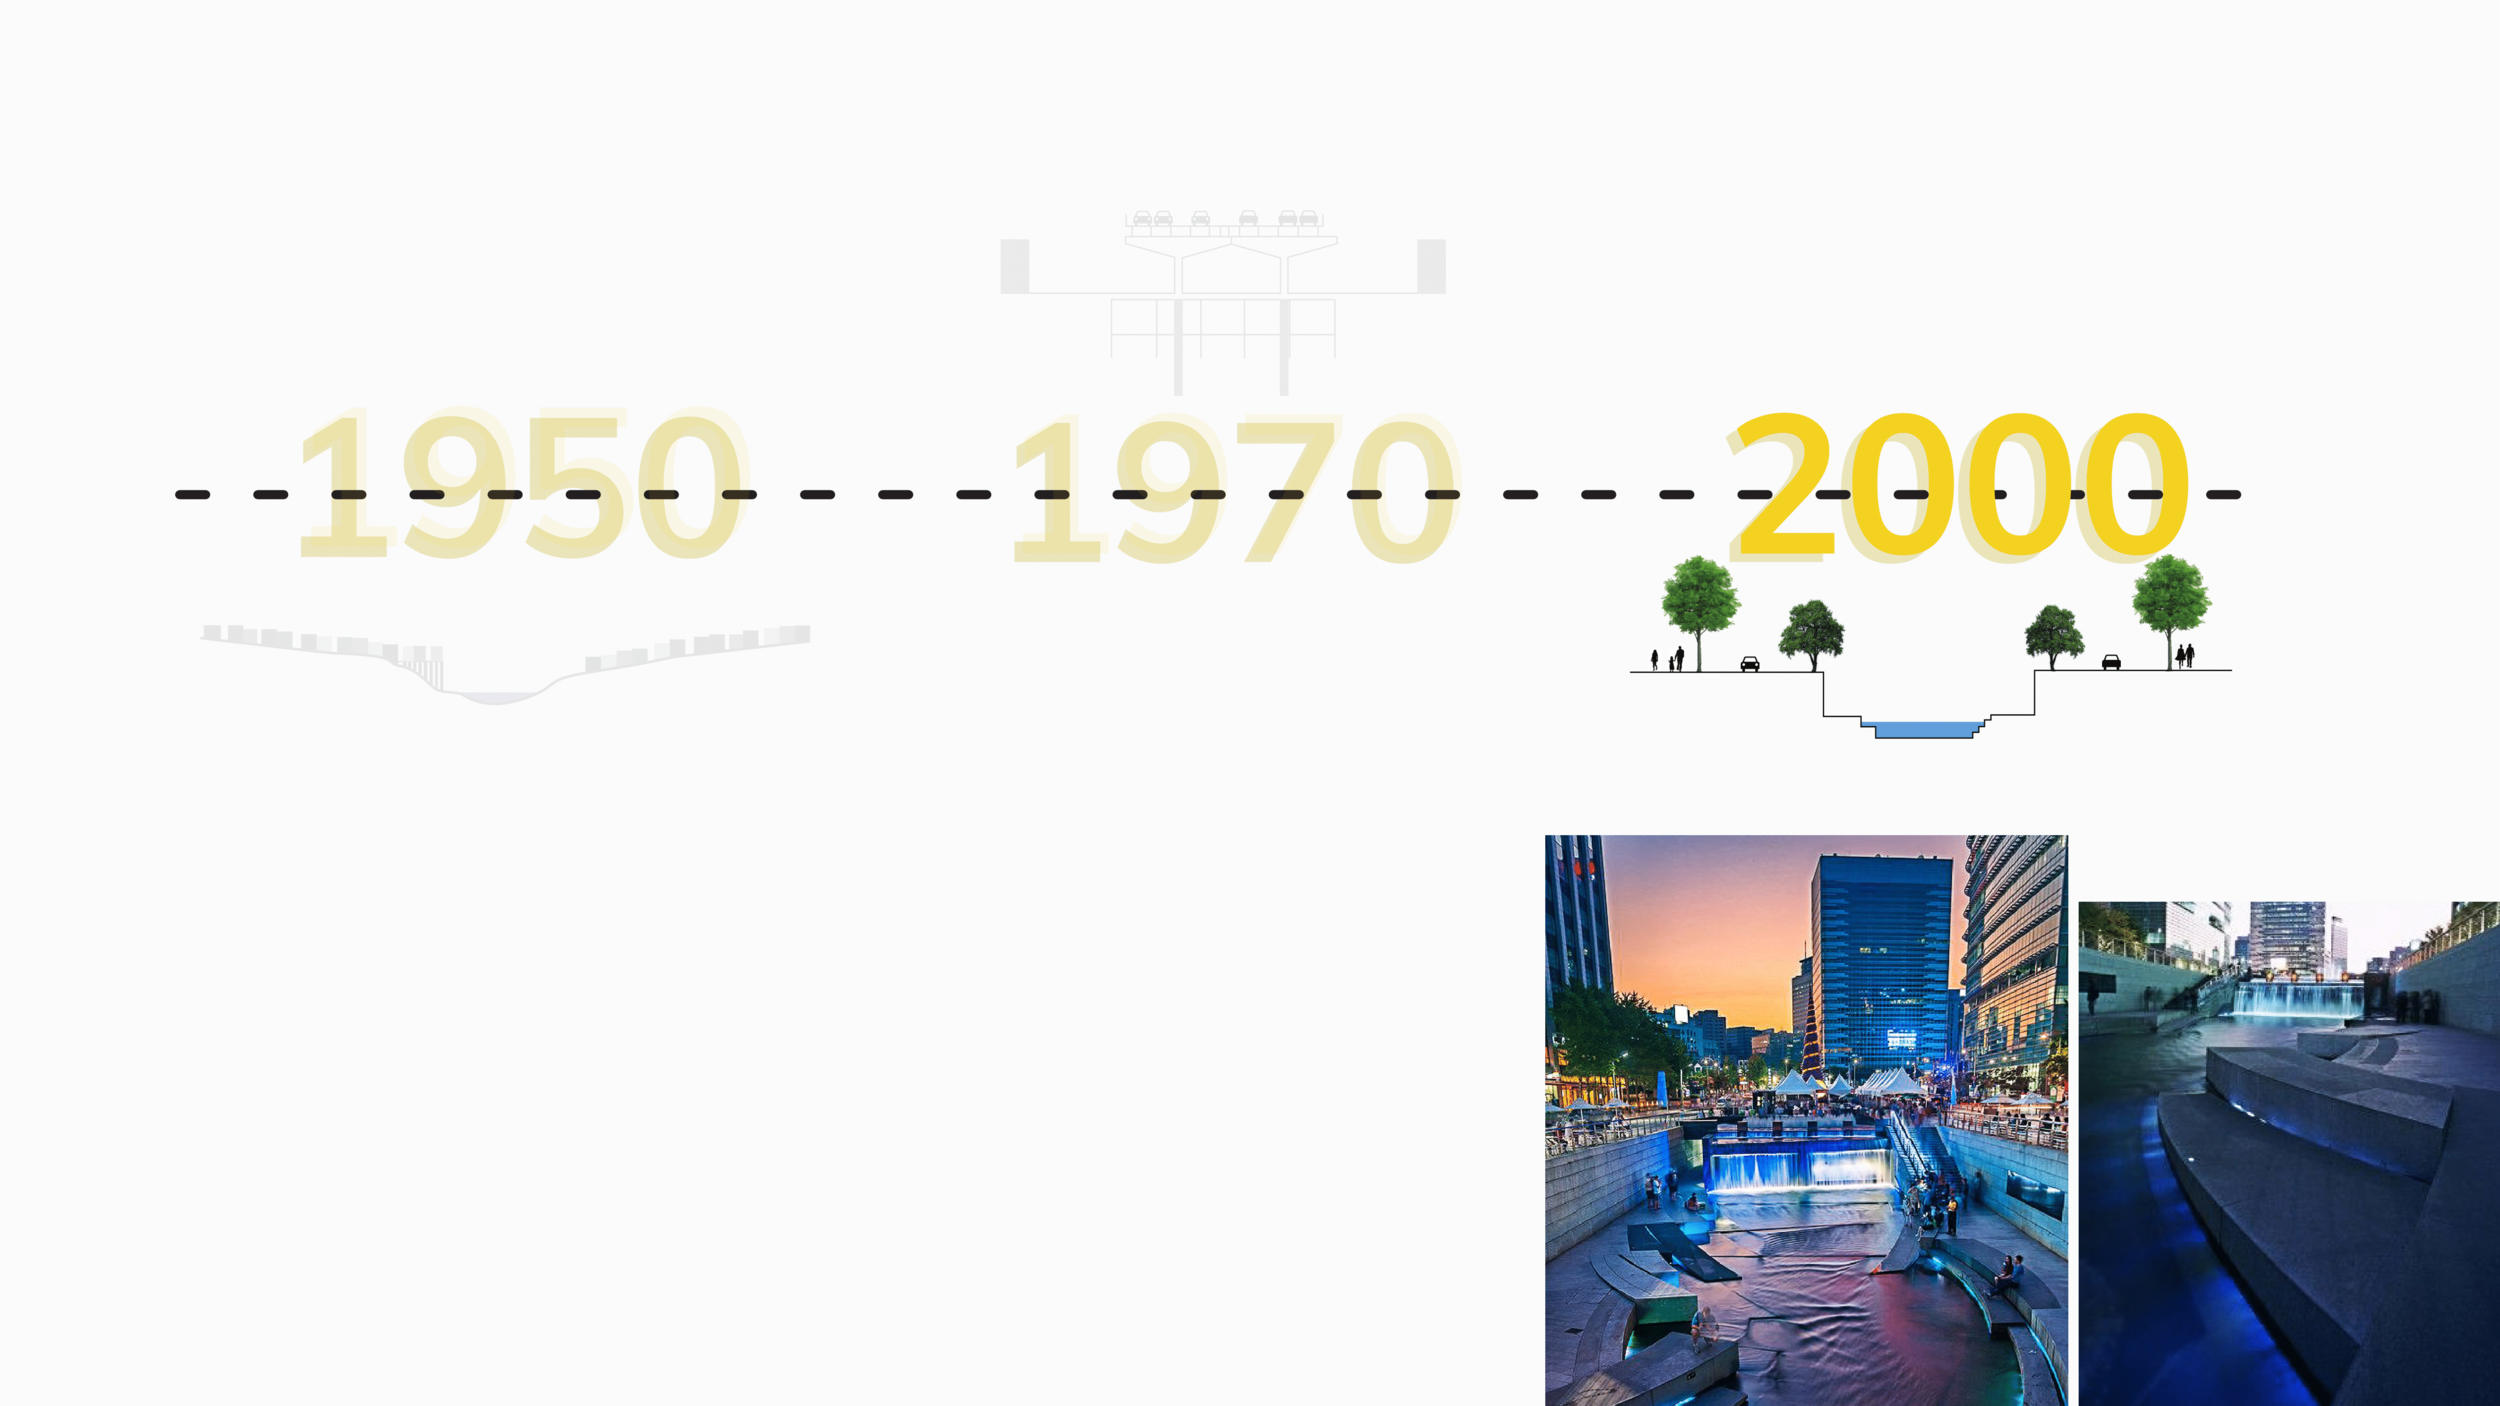 compare and contrast - With the slide on the left, the presentation of the transition of Cheonggyecheon area from 1970s to 2000s will be very smoothly. The contrast of b&w images and colorful images of Seoul also provide a better comparison on how the city and its areas are changing.